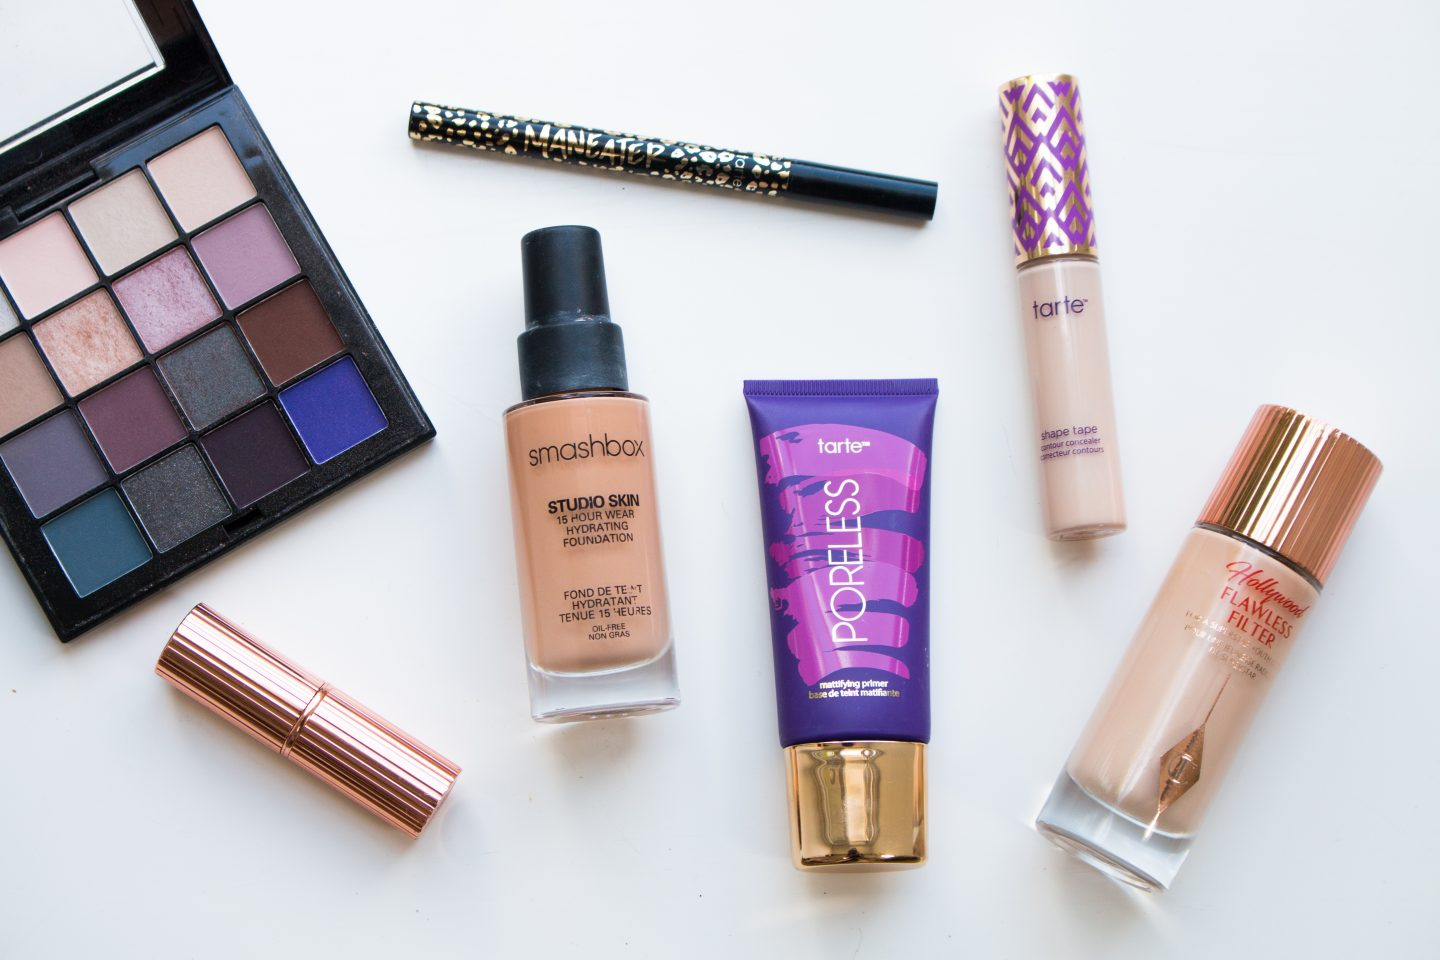 Cruelty-free beauty products from Tarte, NYX, Smashbox and Charlotte Tilbury